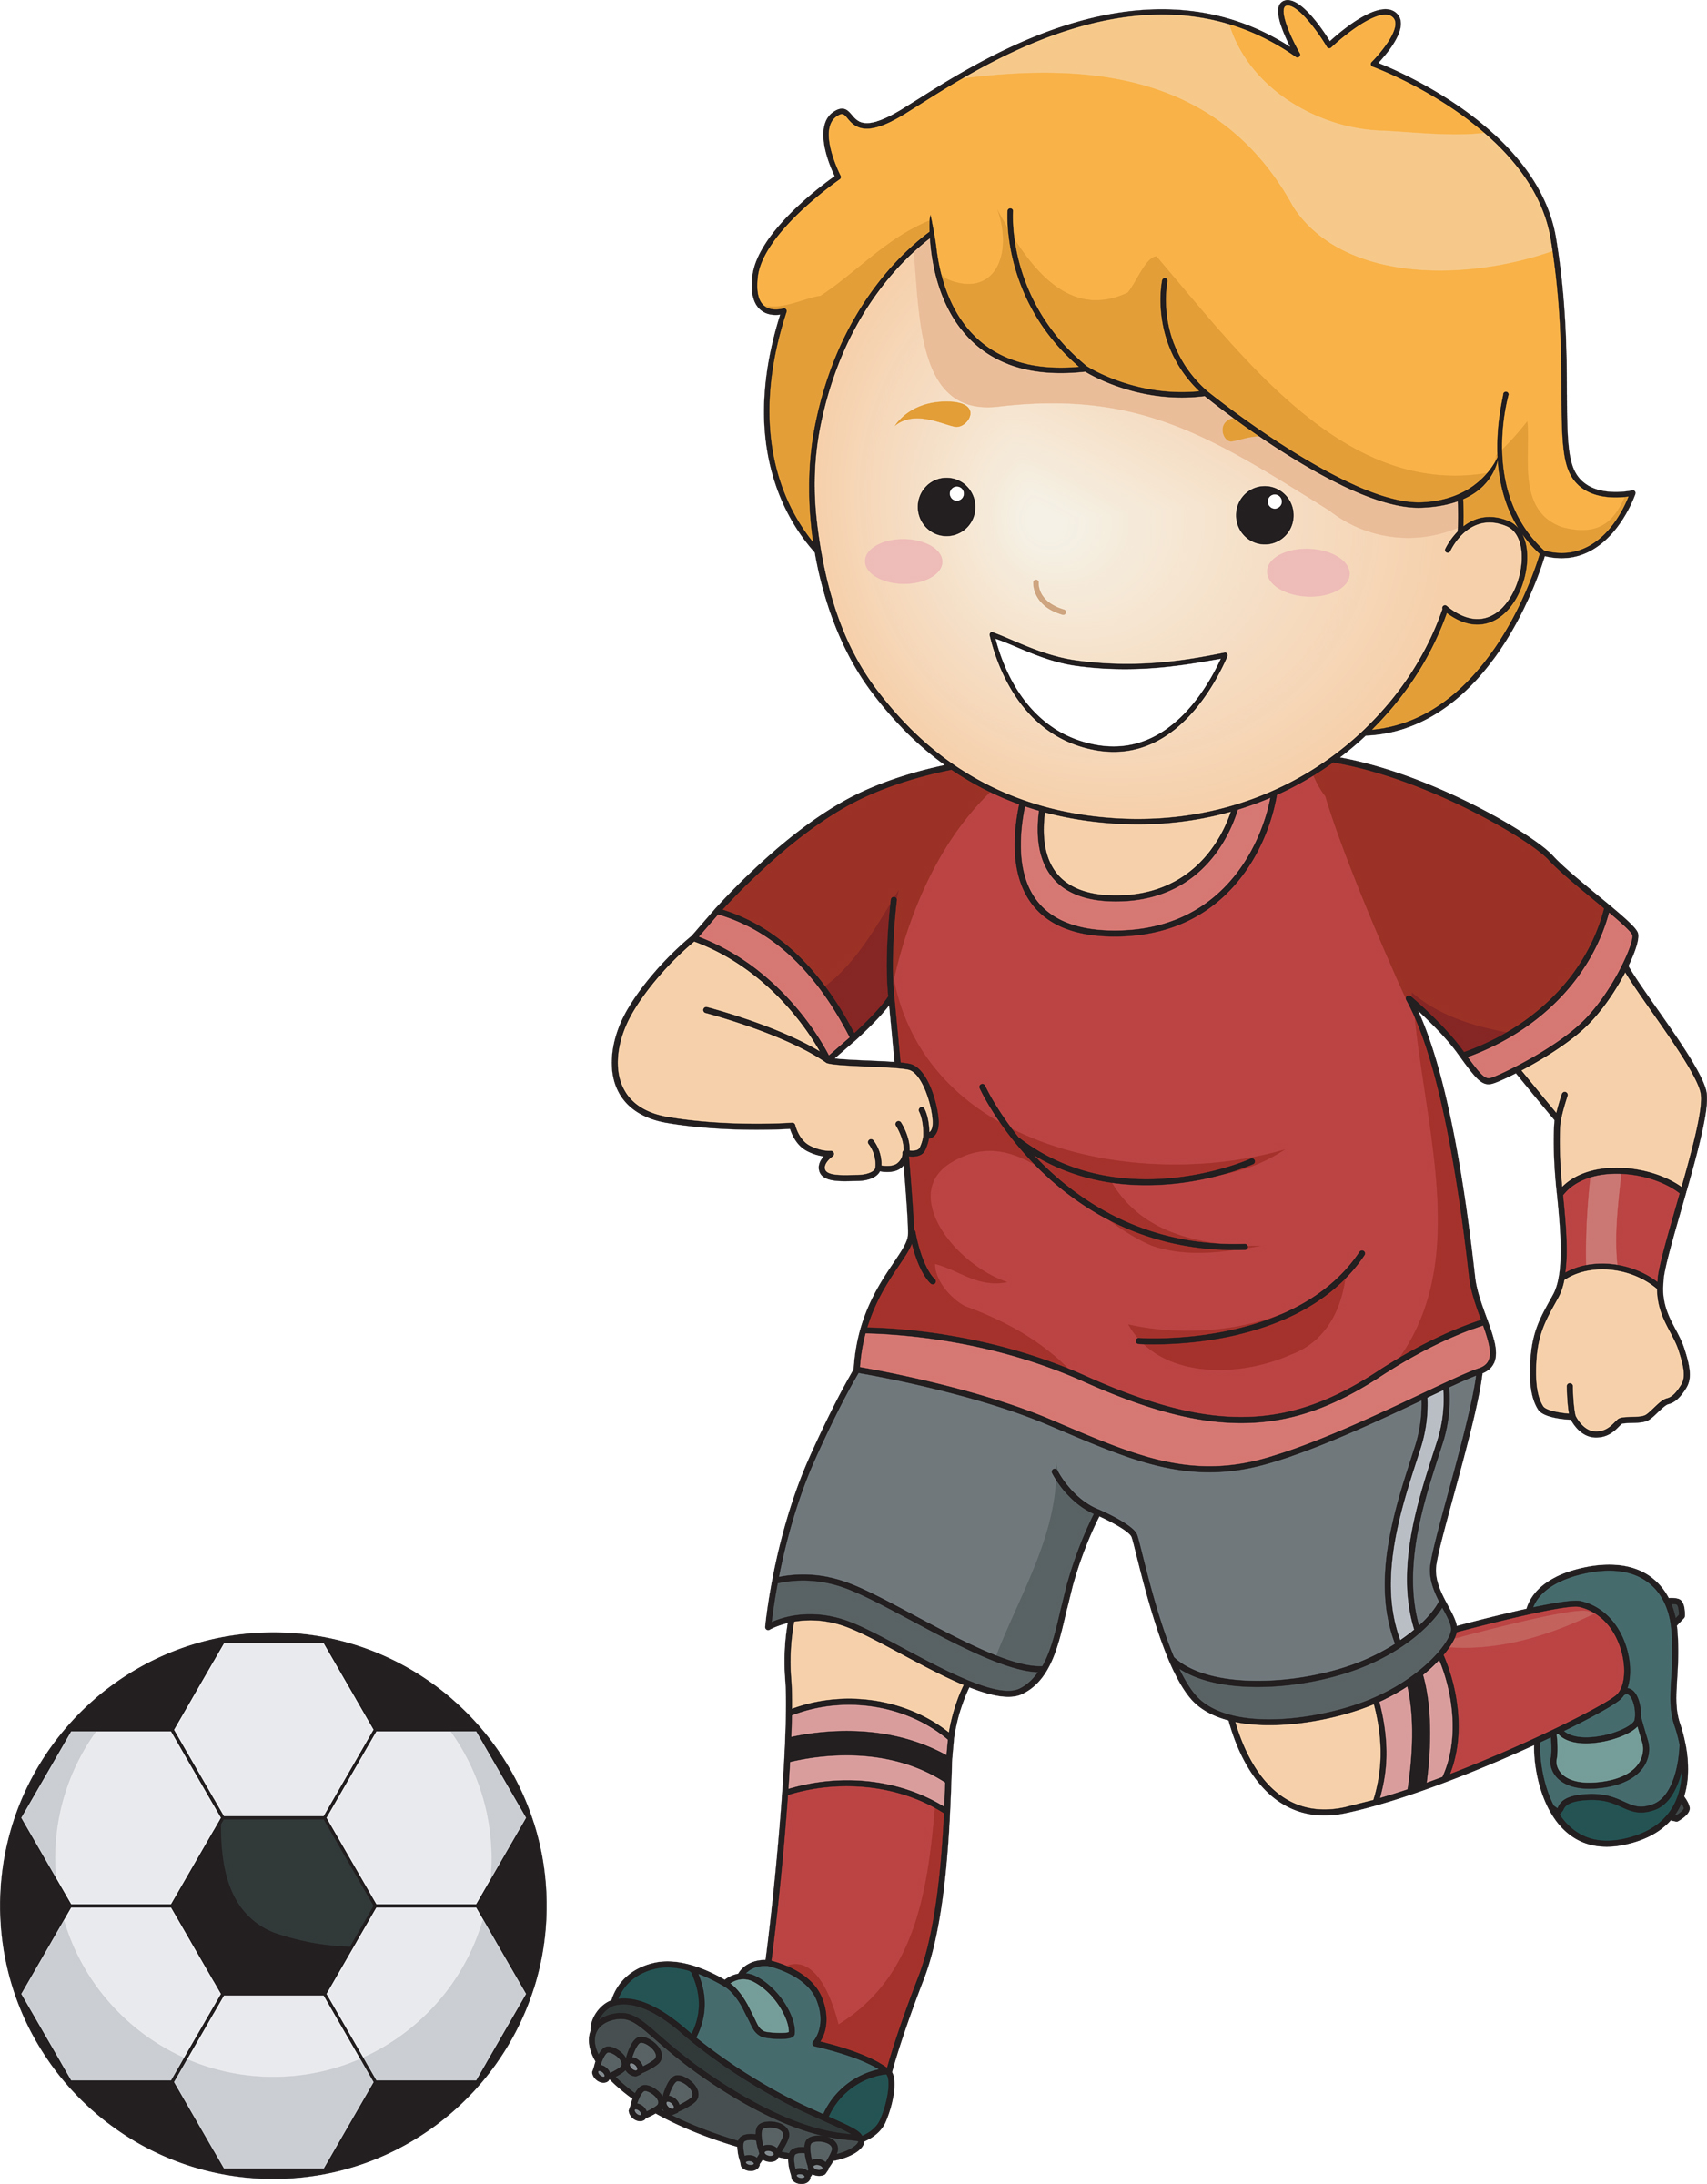 Football clipart locomotor movement Physical West Vision Hartford Physical